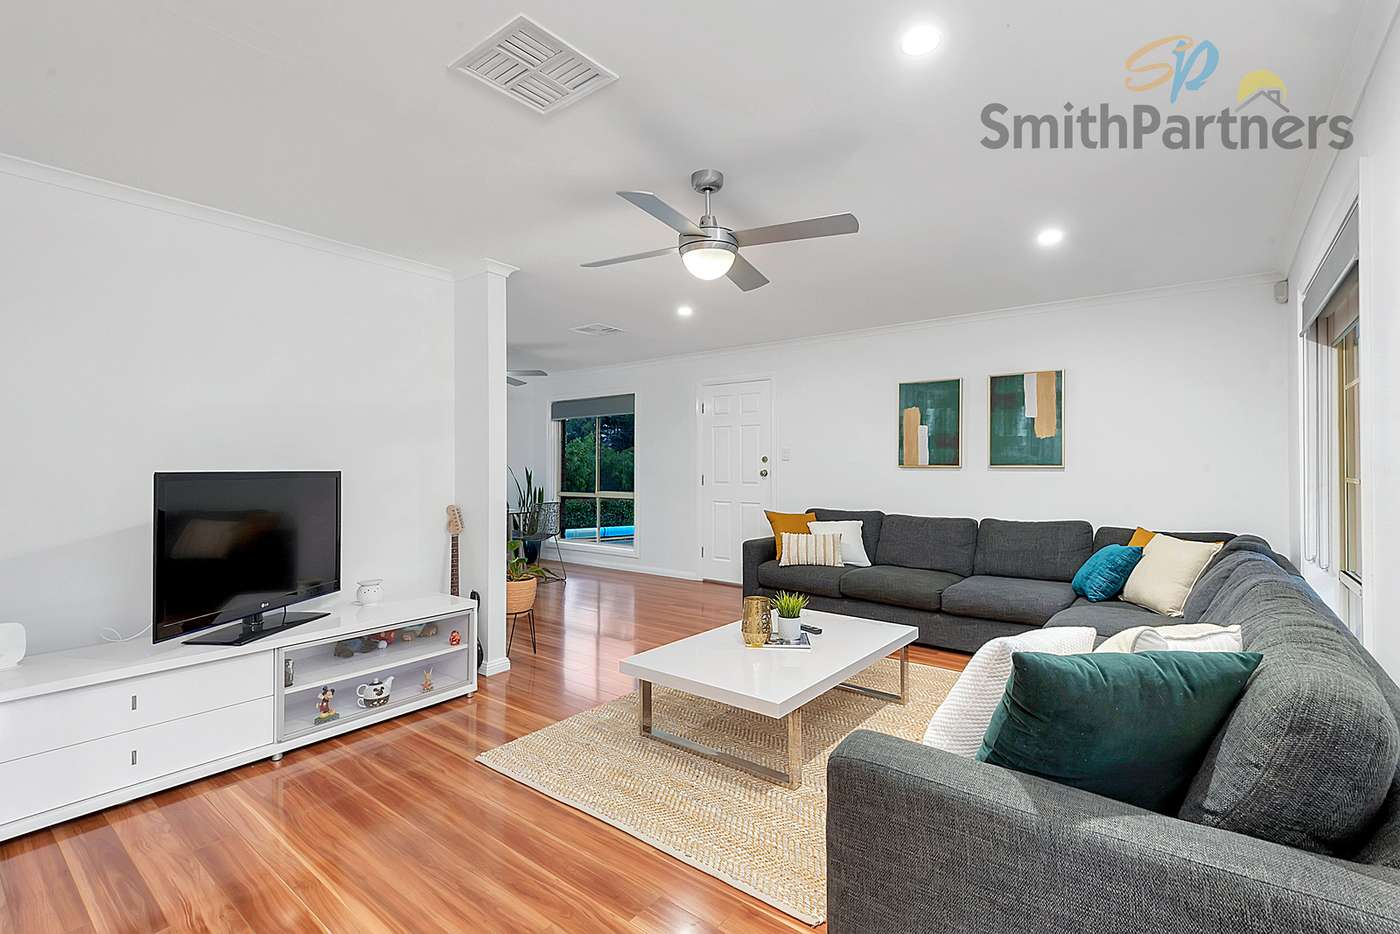 Fifth view of Homely house listing, 2 Grylls Court, Wynn Vale SA 5127